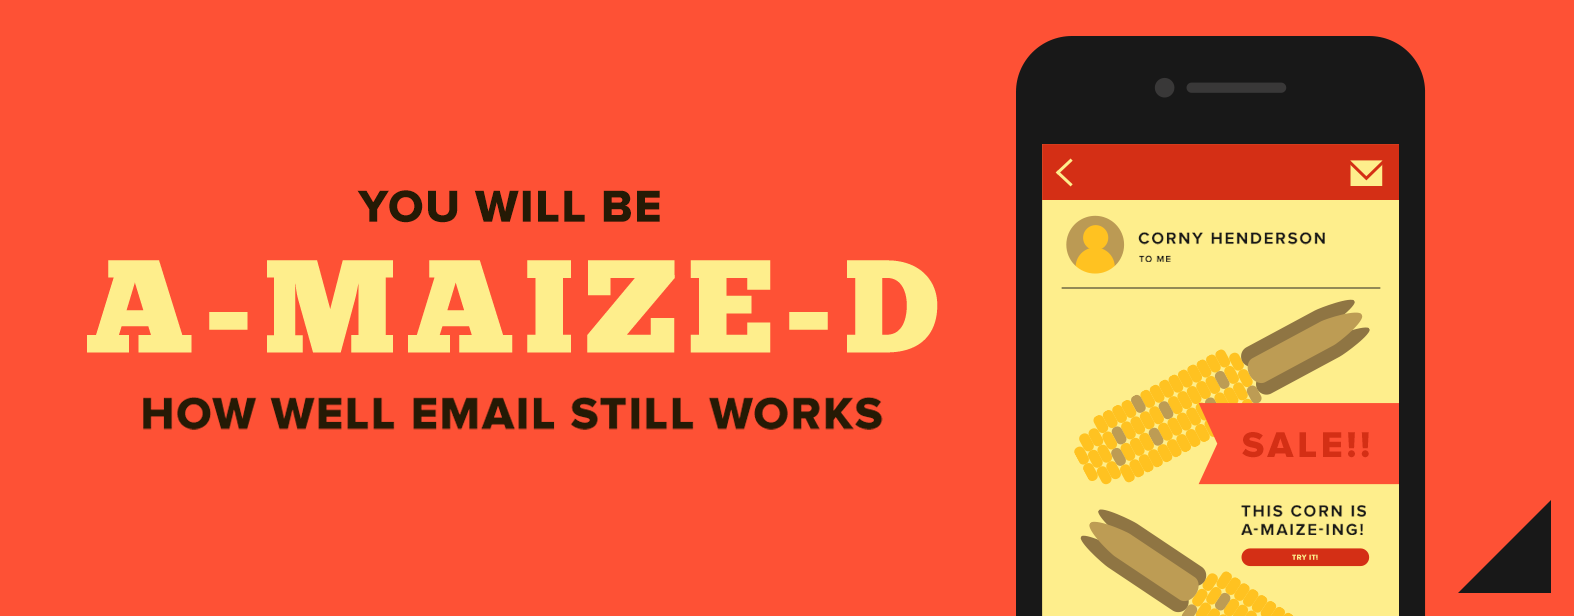 You will be a-maize-d how well email still works.